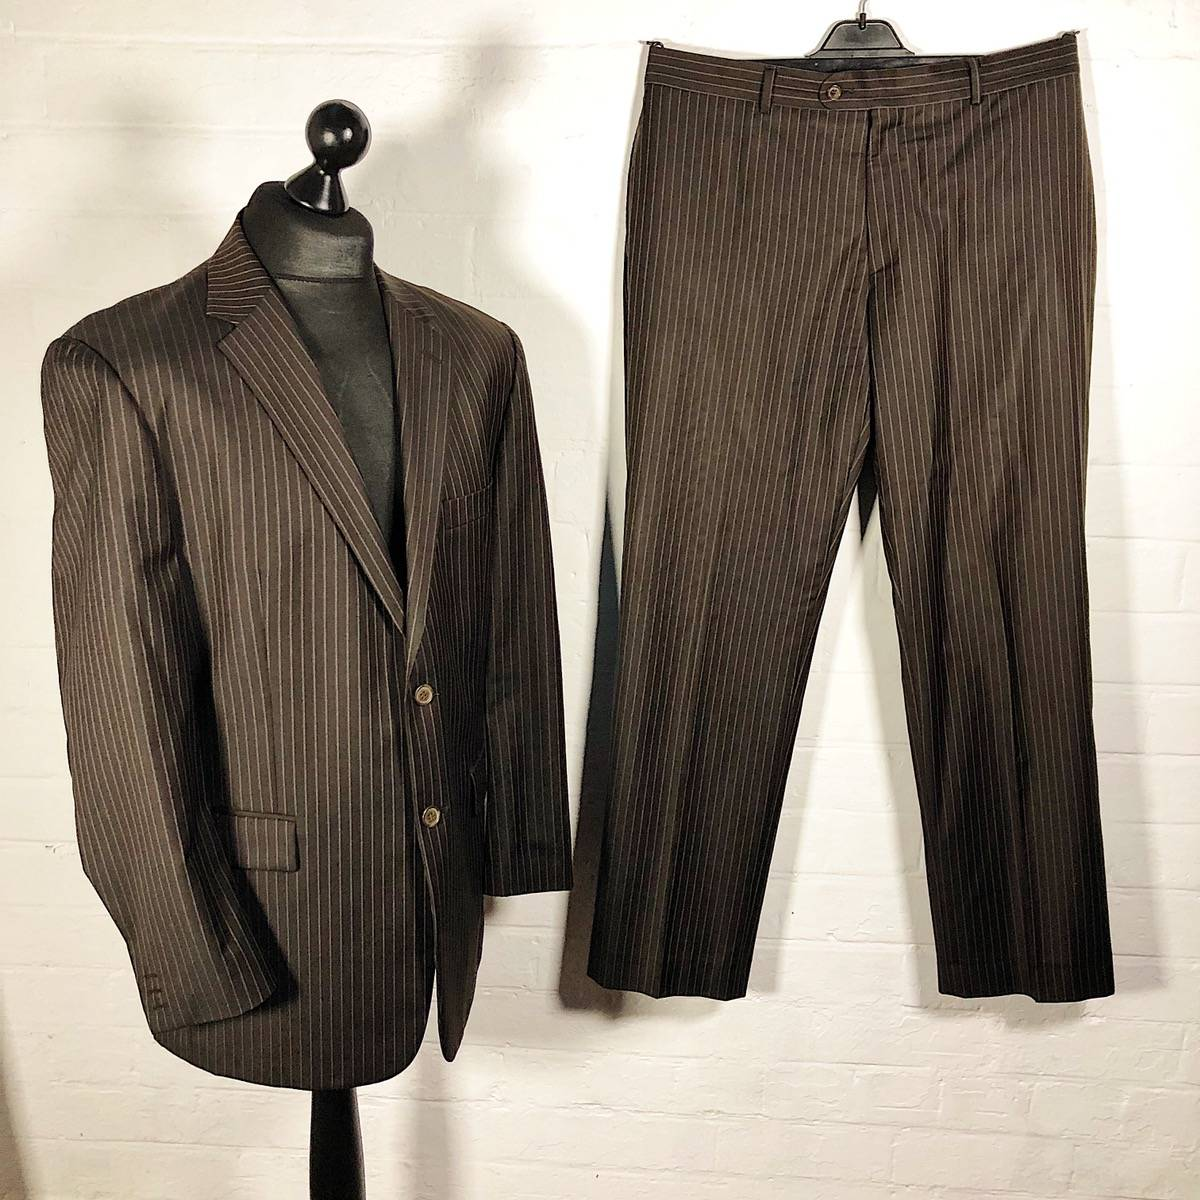 good selling outlet store various design Ysl Pour Homme Yves Saint Laurent Brown Pinstripe Suit | Grailed